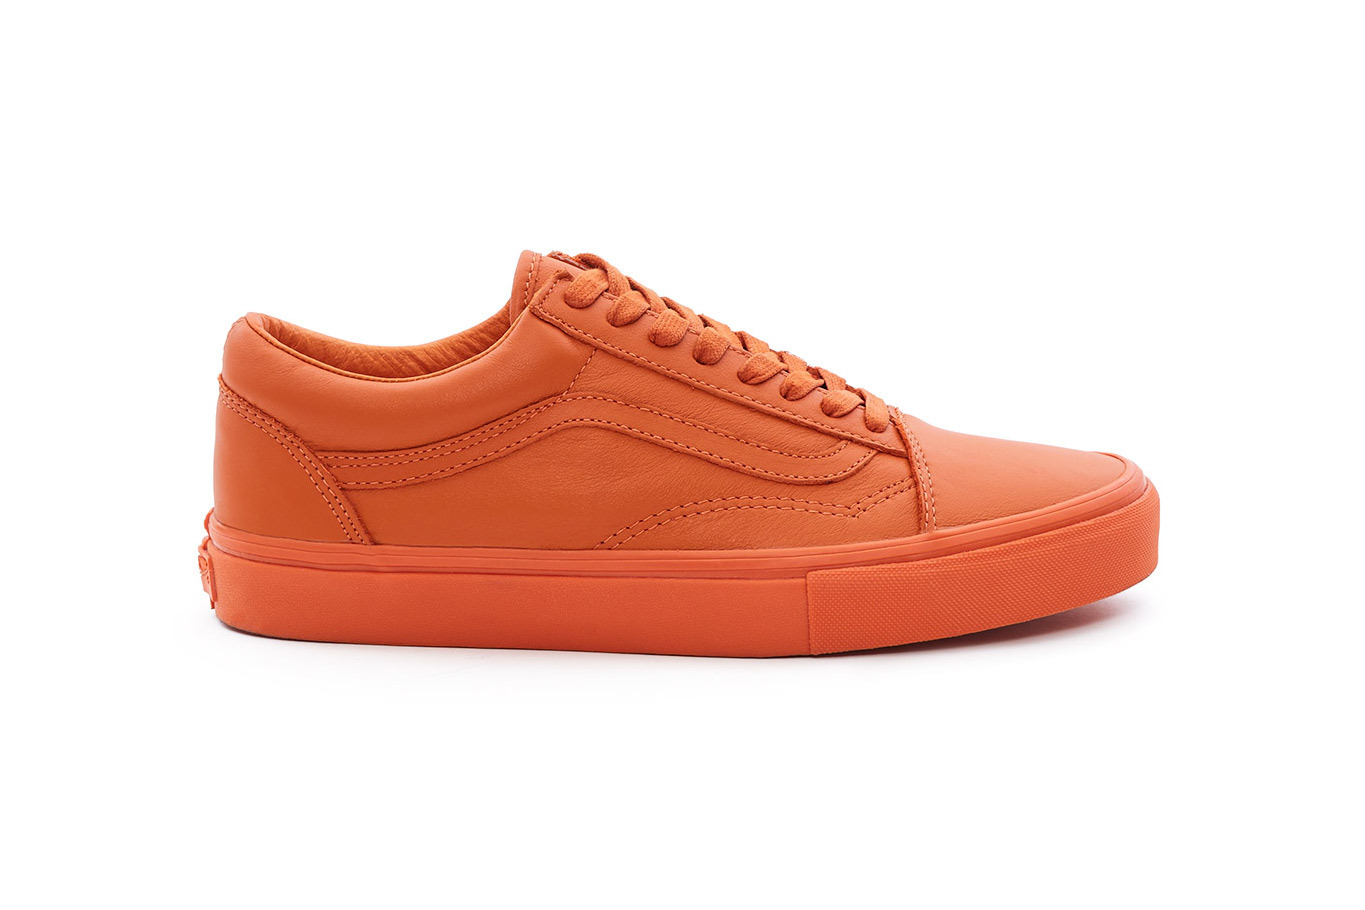 e72d31cd195 Vans X Opening Ceremony -  Leather Mono  Pack - SneakersBR